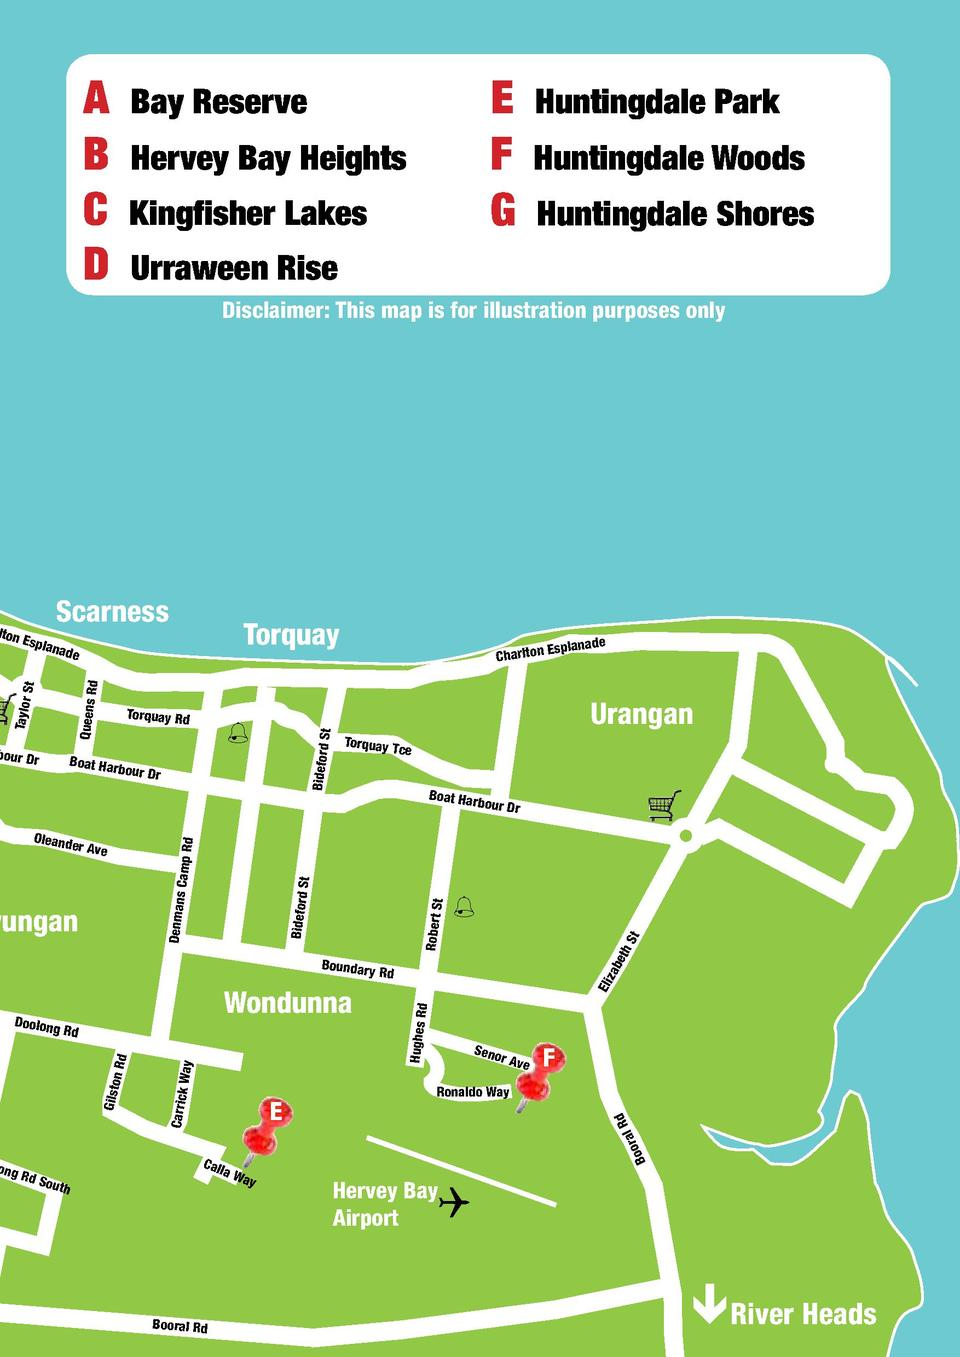 A B C D  E F G  Bay Reserve Hervey Bay Heights Kingfisher Lakes  Huntingdale Park Huntingdale Woods Huntingdale Shores  Ur...